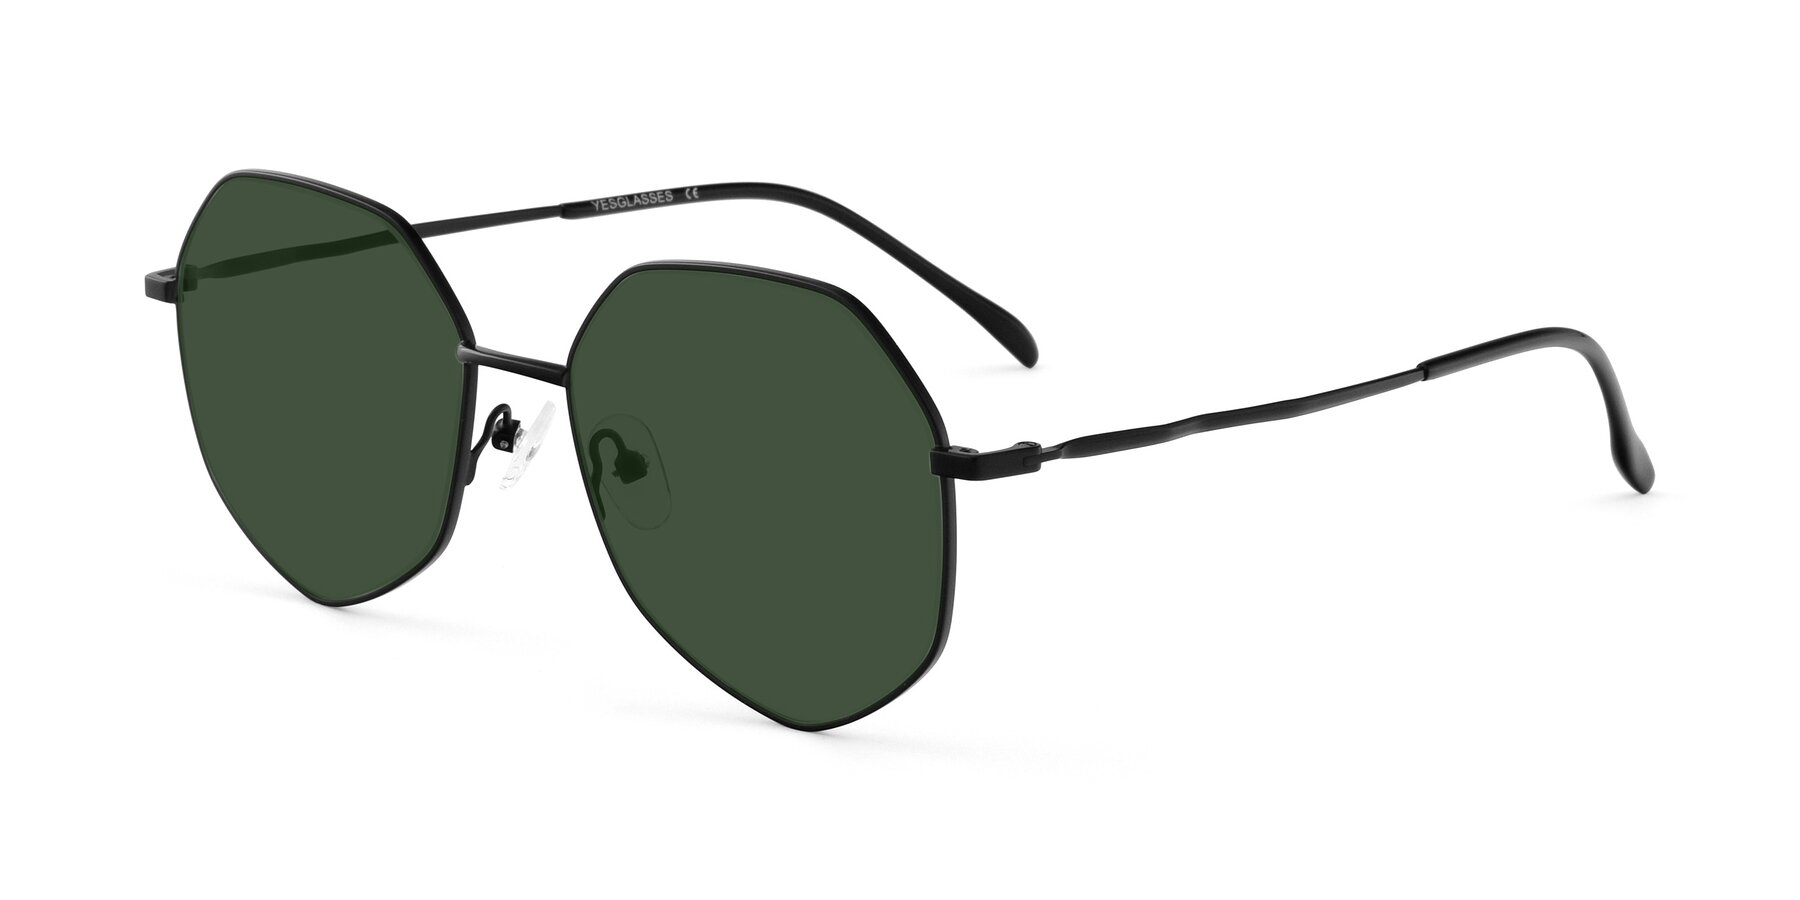 Angle of Sunshine in Black with Green Tinted Lenses